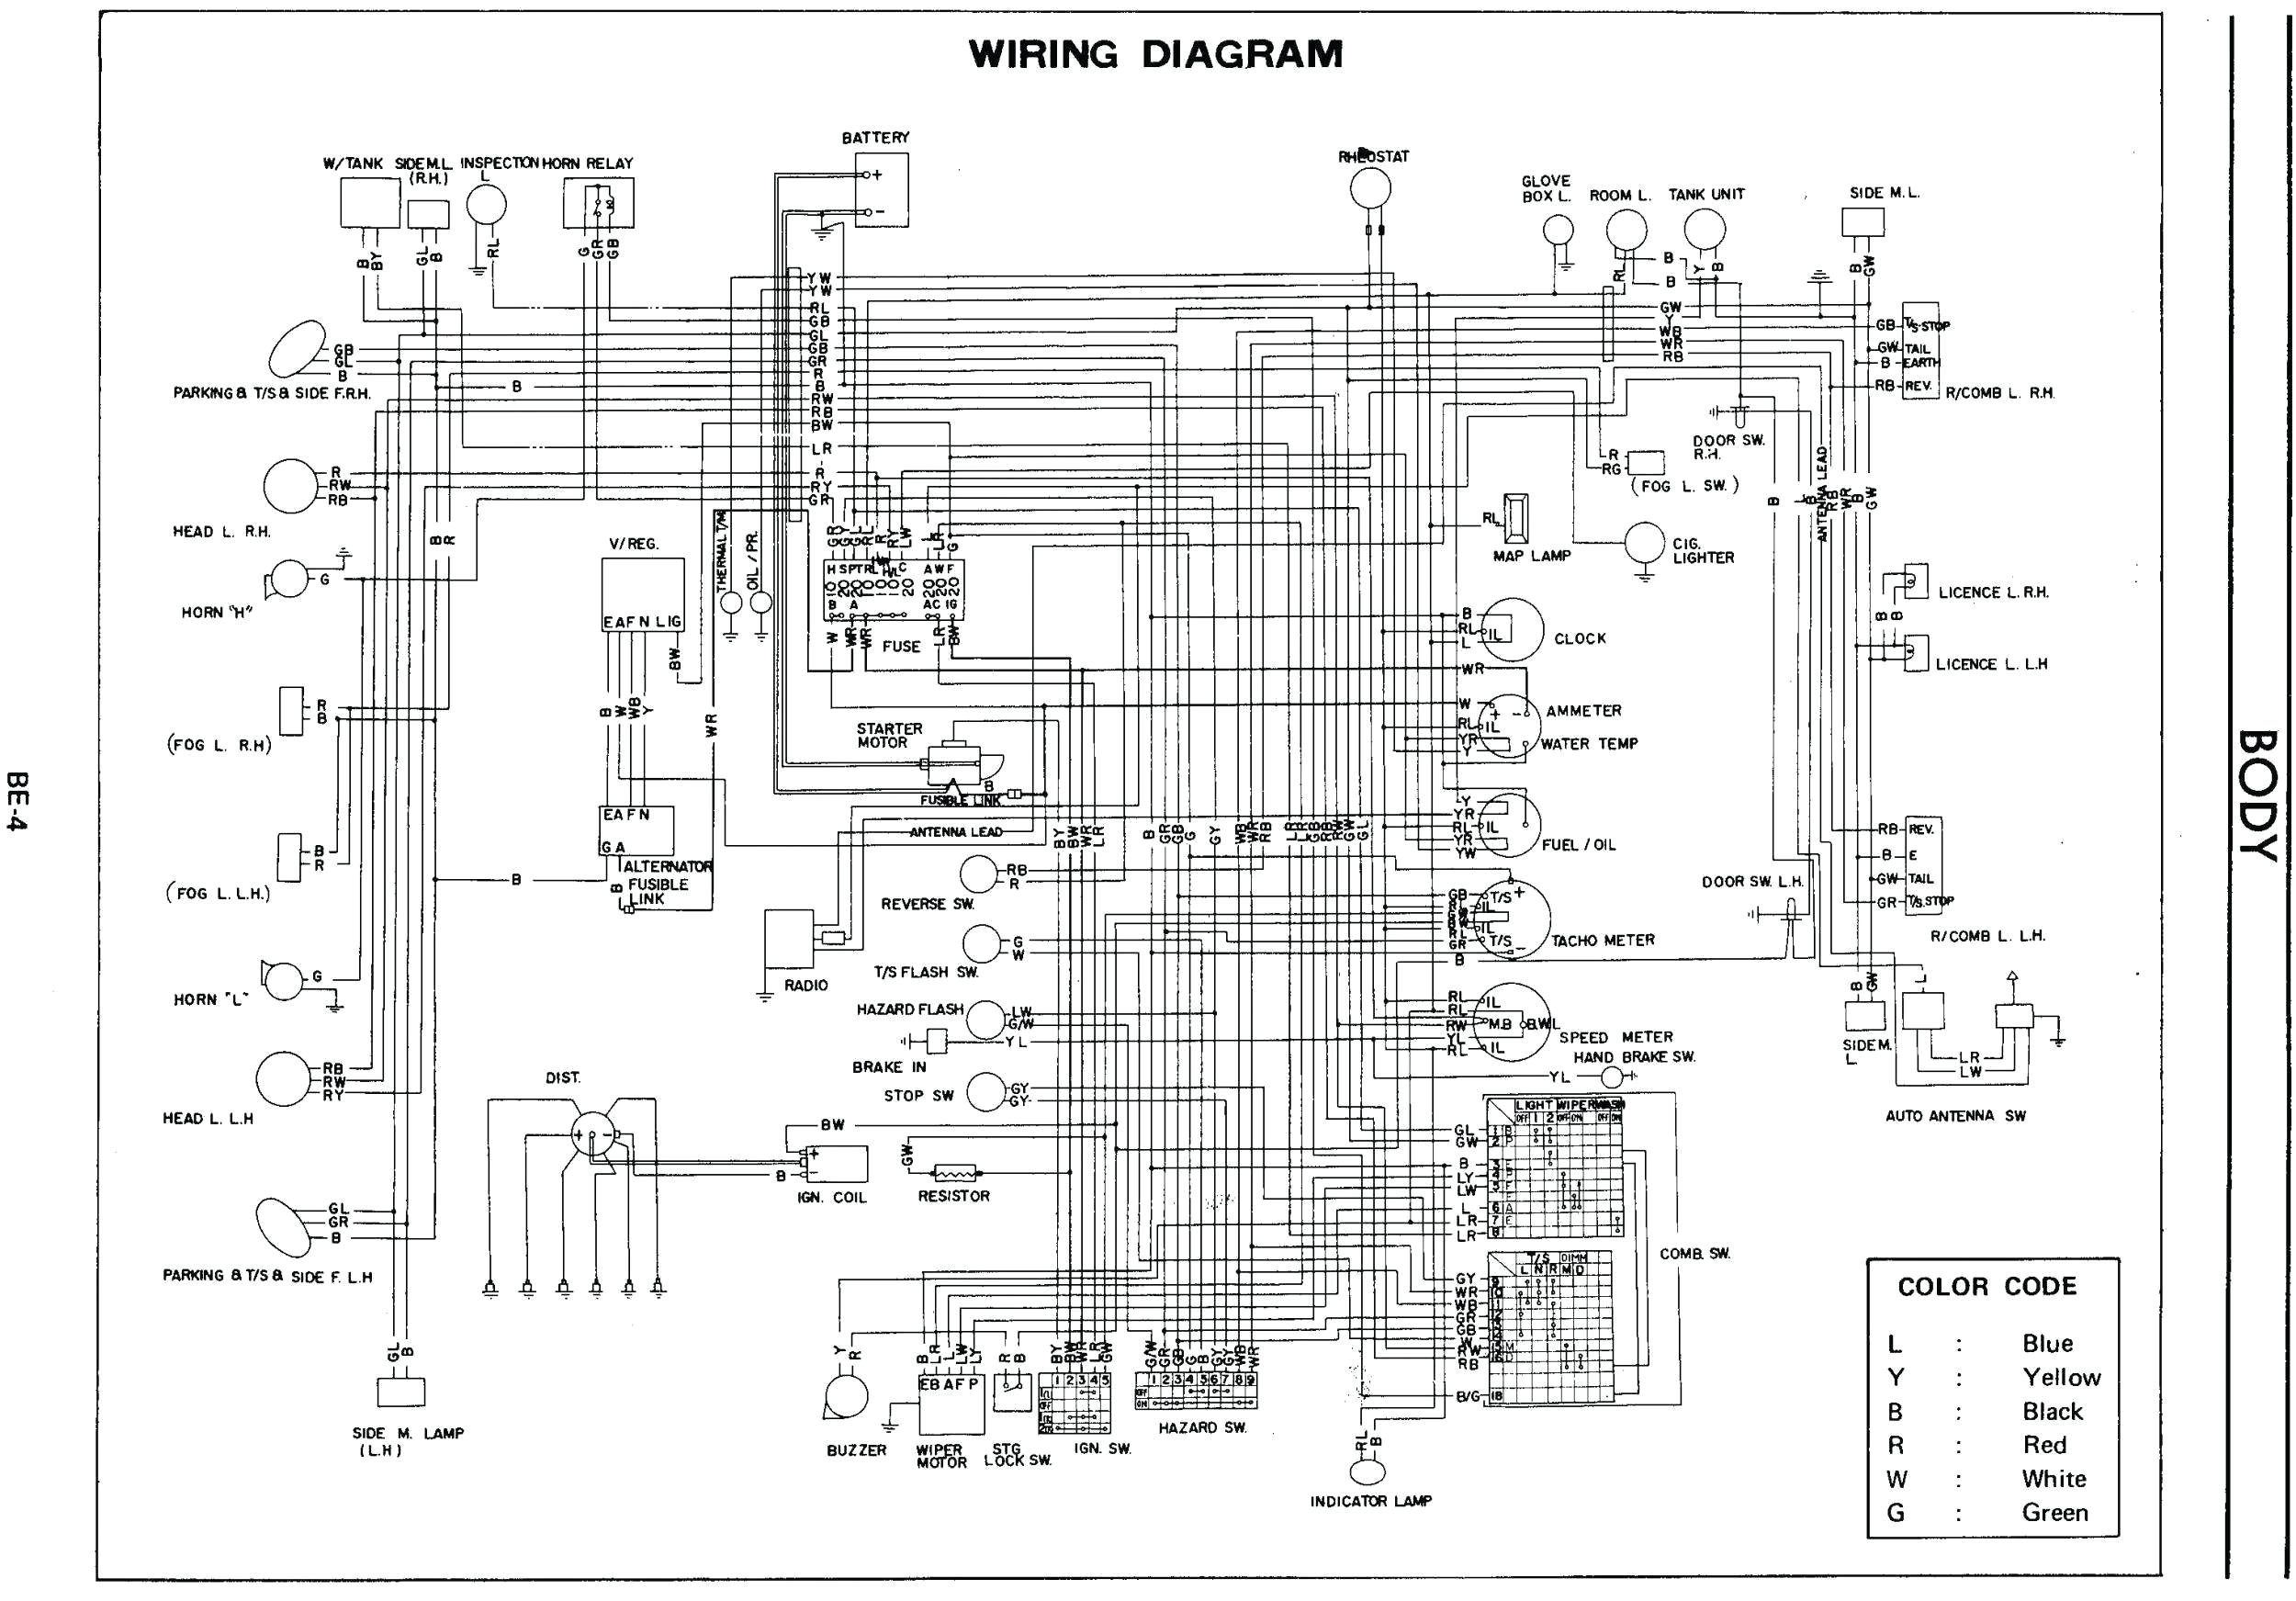 s13 ignition switch wiring diagram valid wiring diagram likewise nissan ka24e vacuum diagram besides s14 fuse of s13 ignition switch wiring diagram jpg